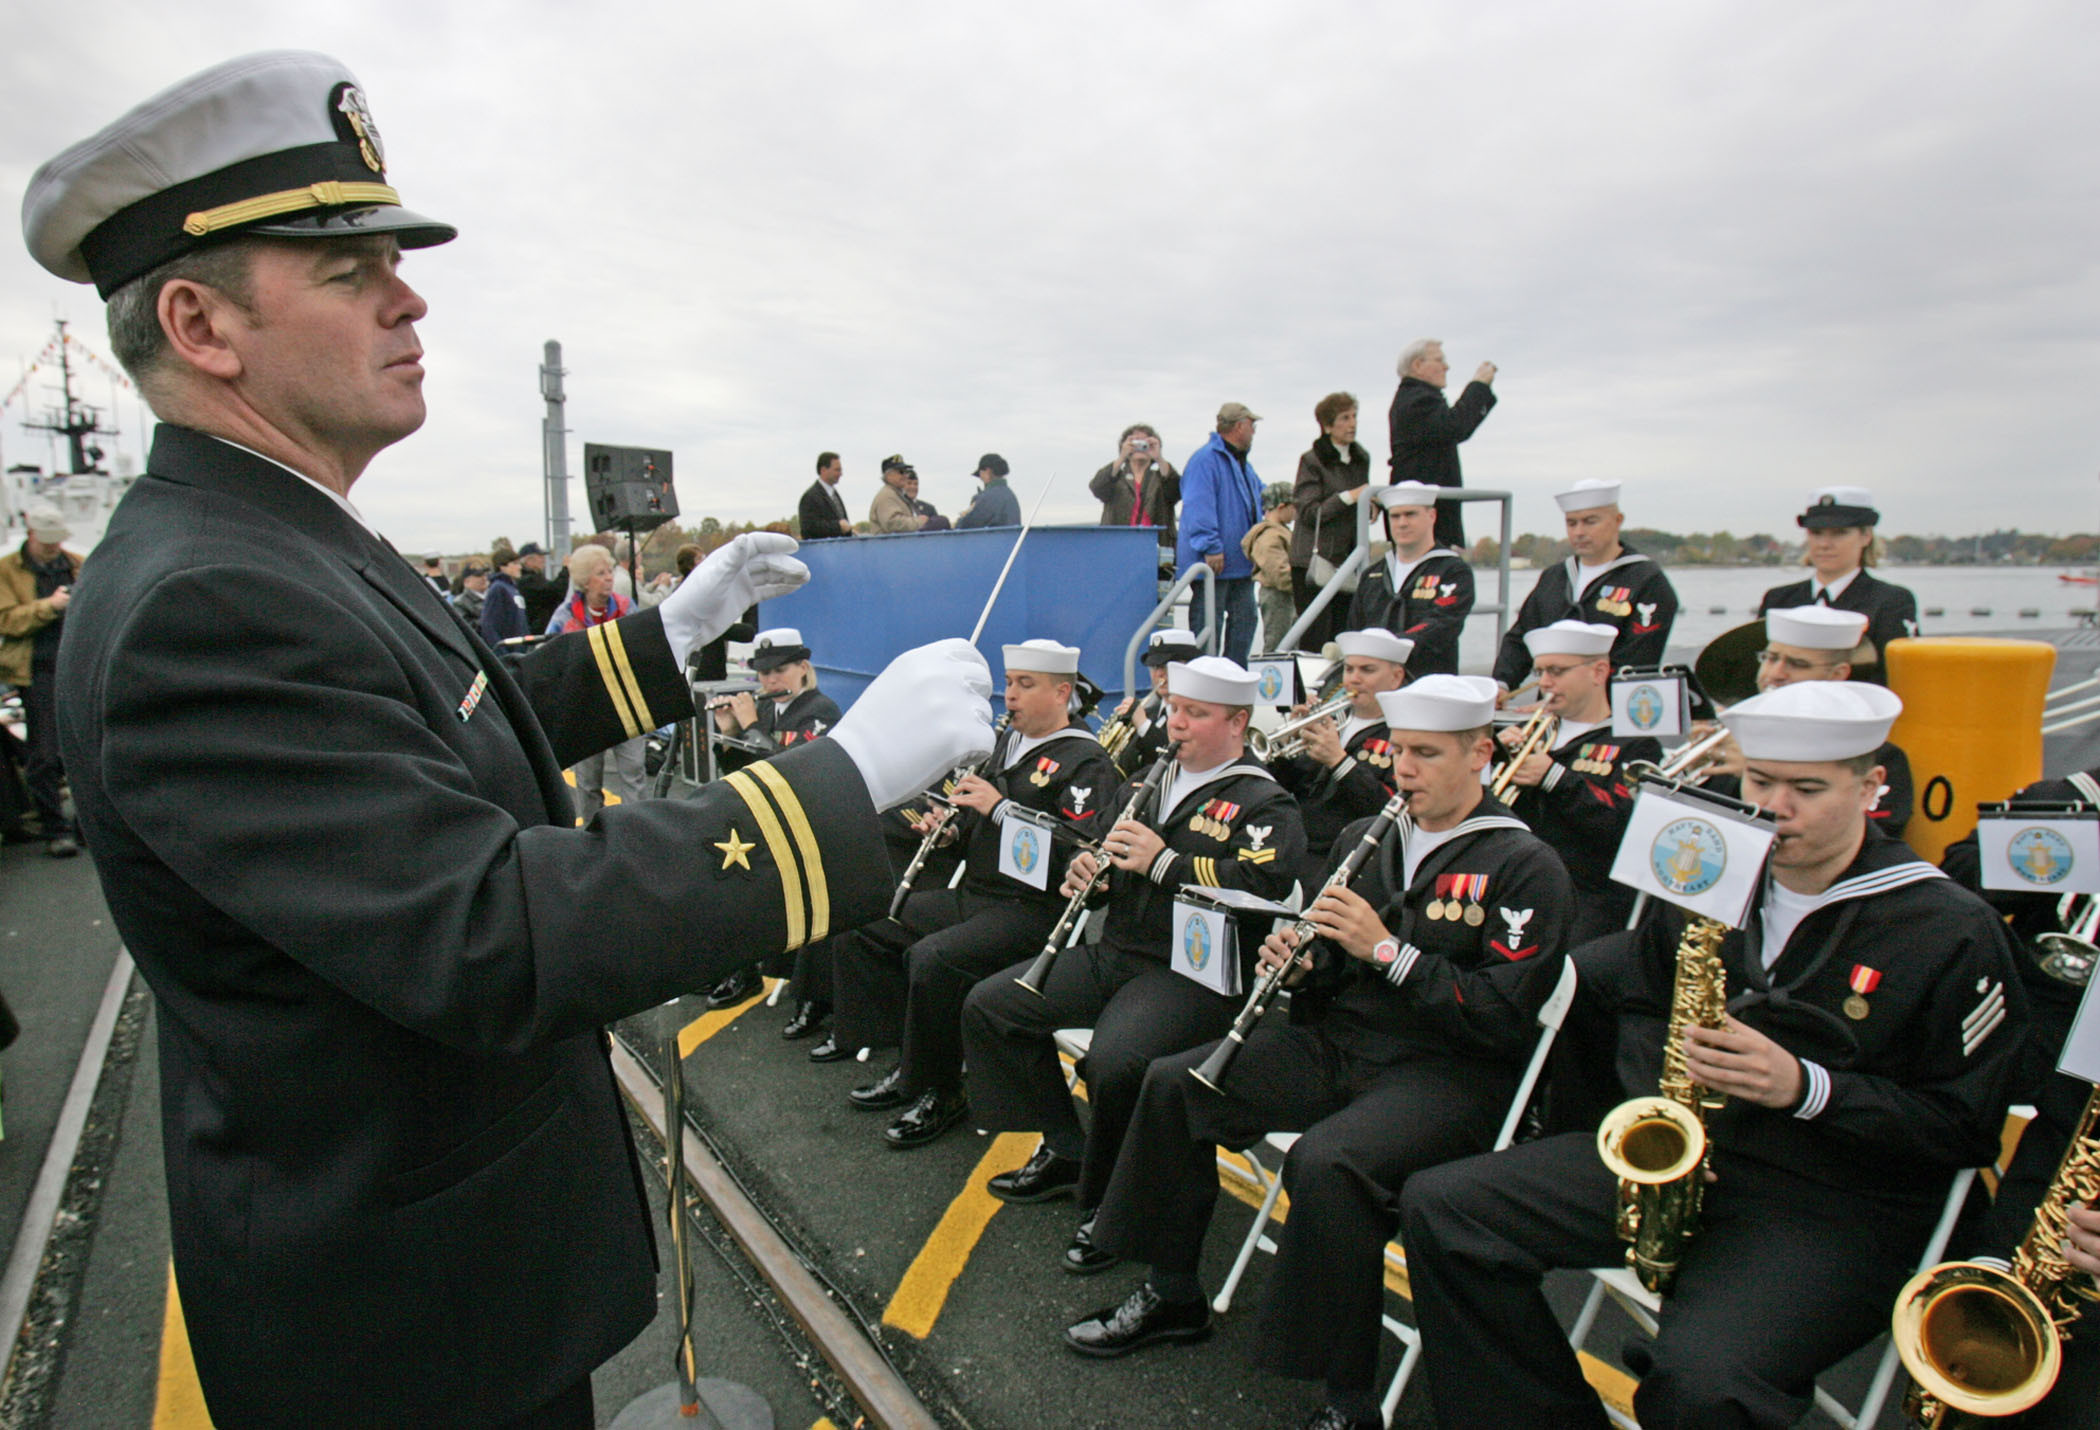 081025-N-7441H-002